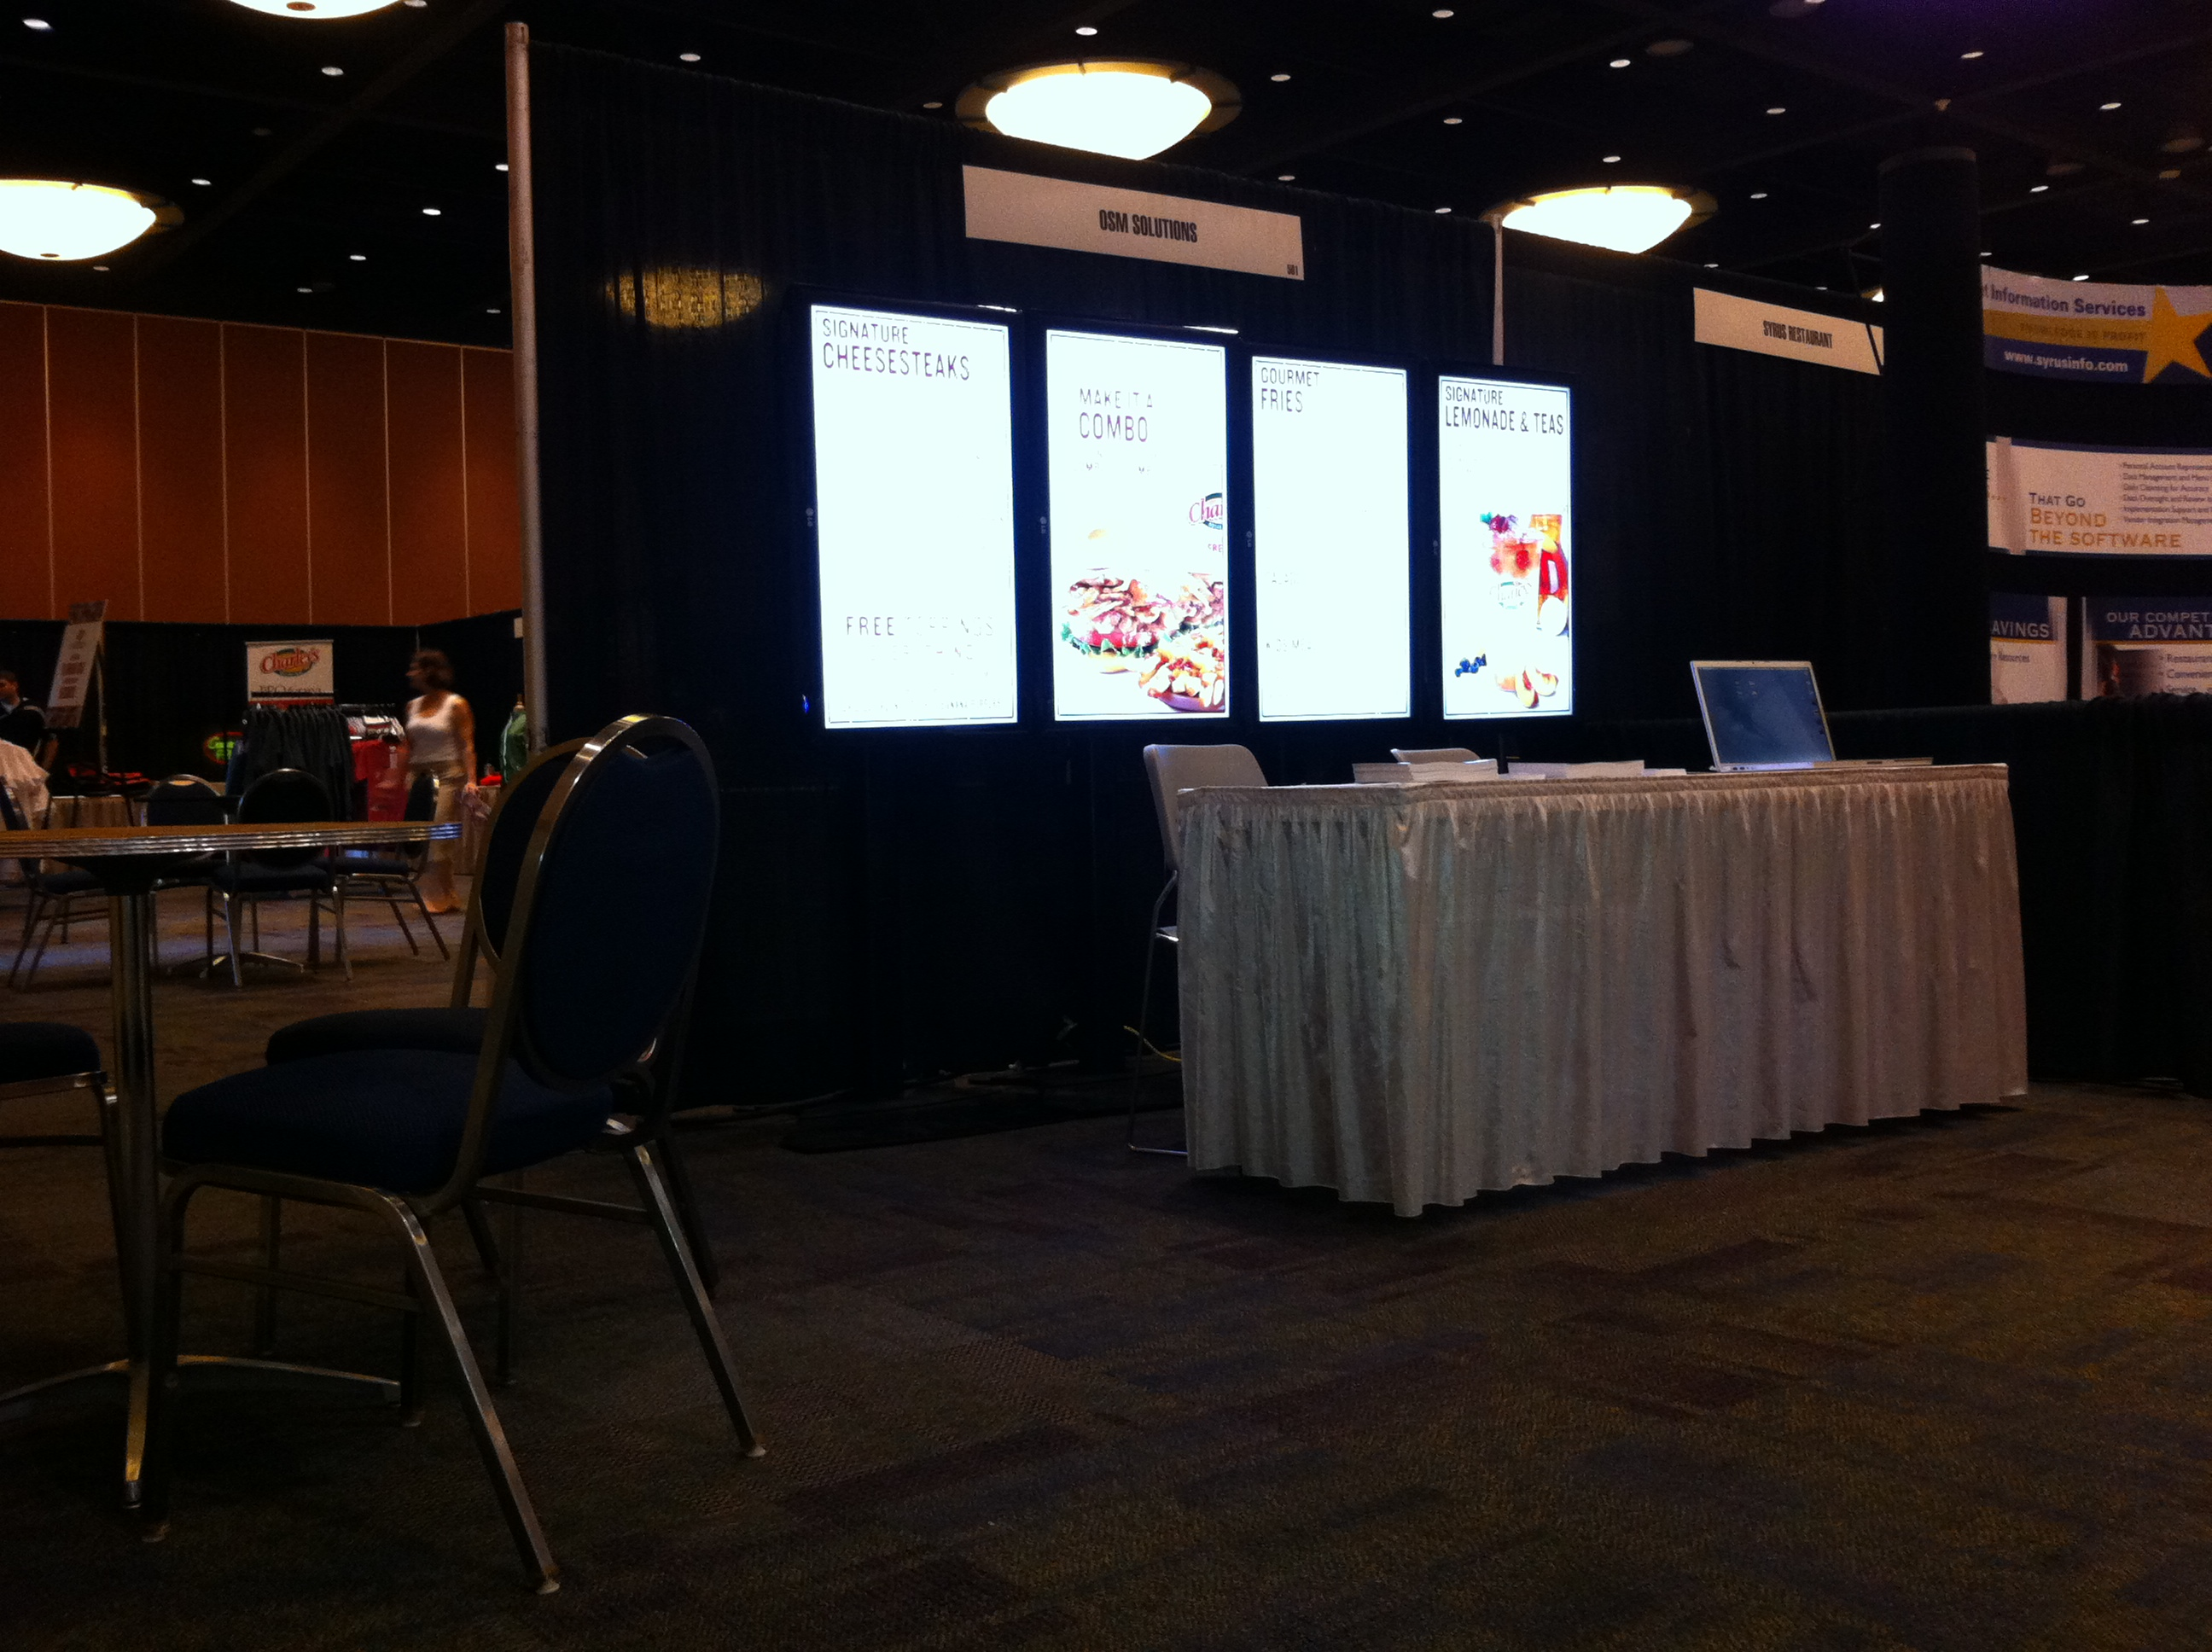 OSM Solutions Exhibits 4-Panel Digital Menu Board System at Charley's Grilled Subs Convention 2012 in Orlando, FL